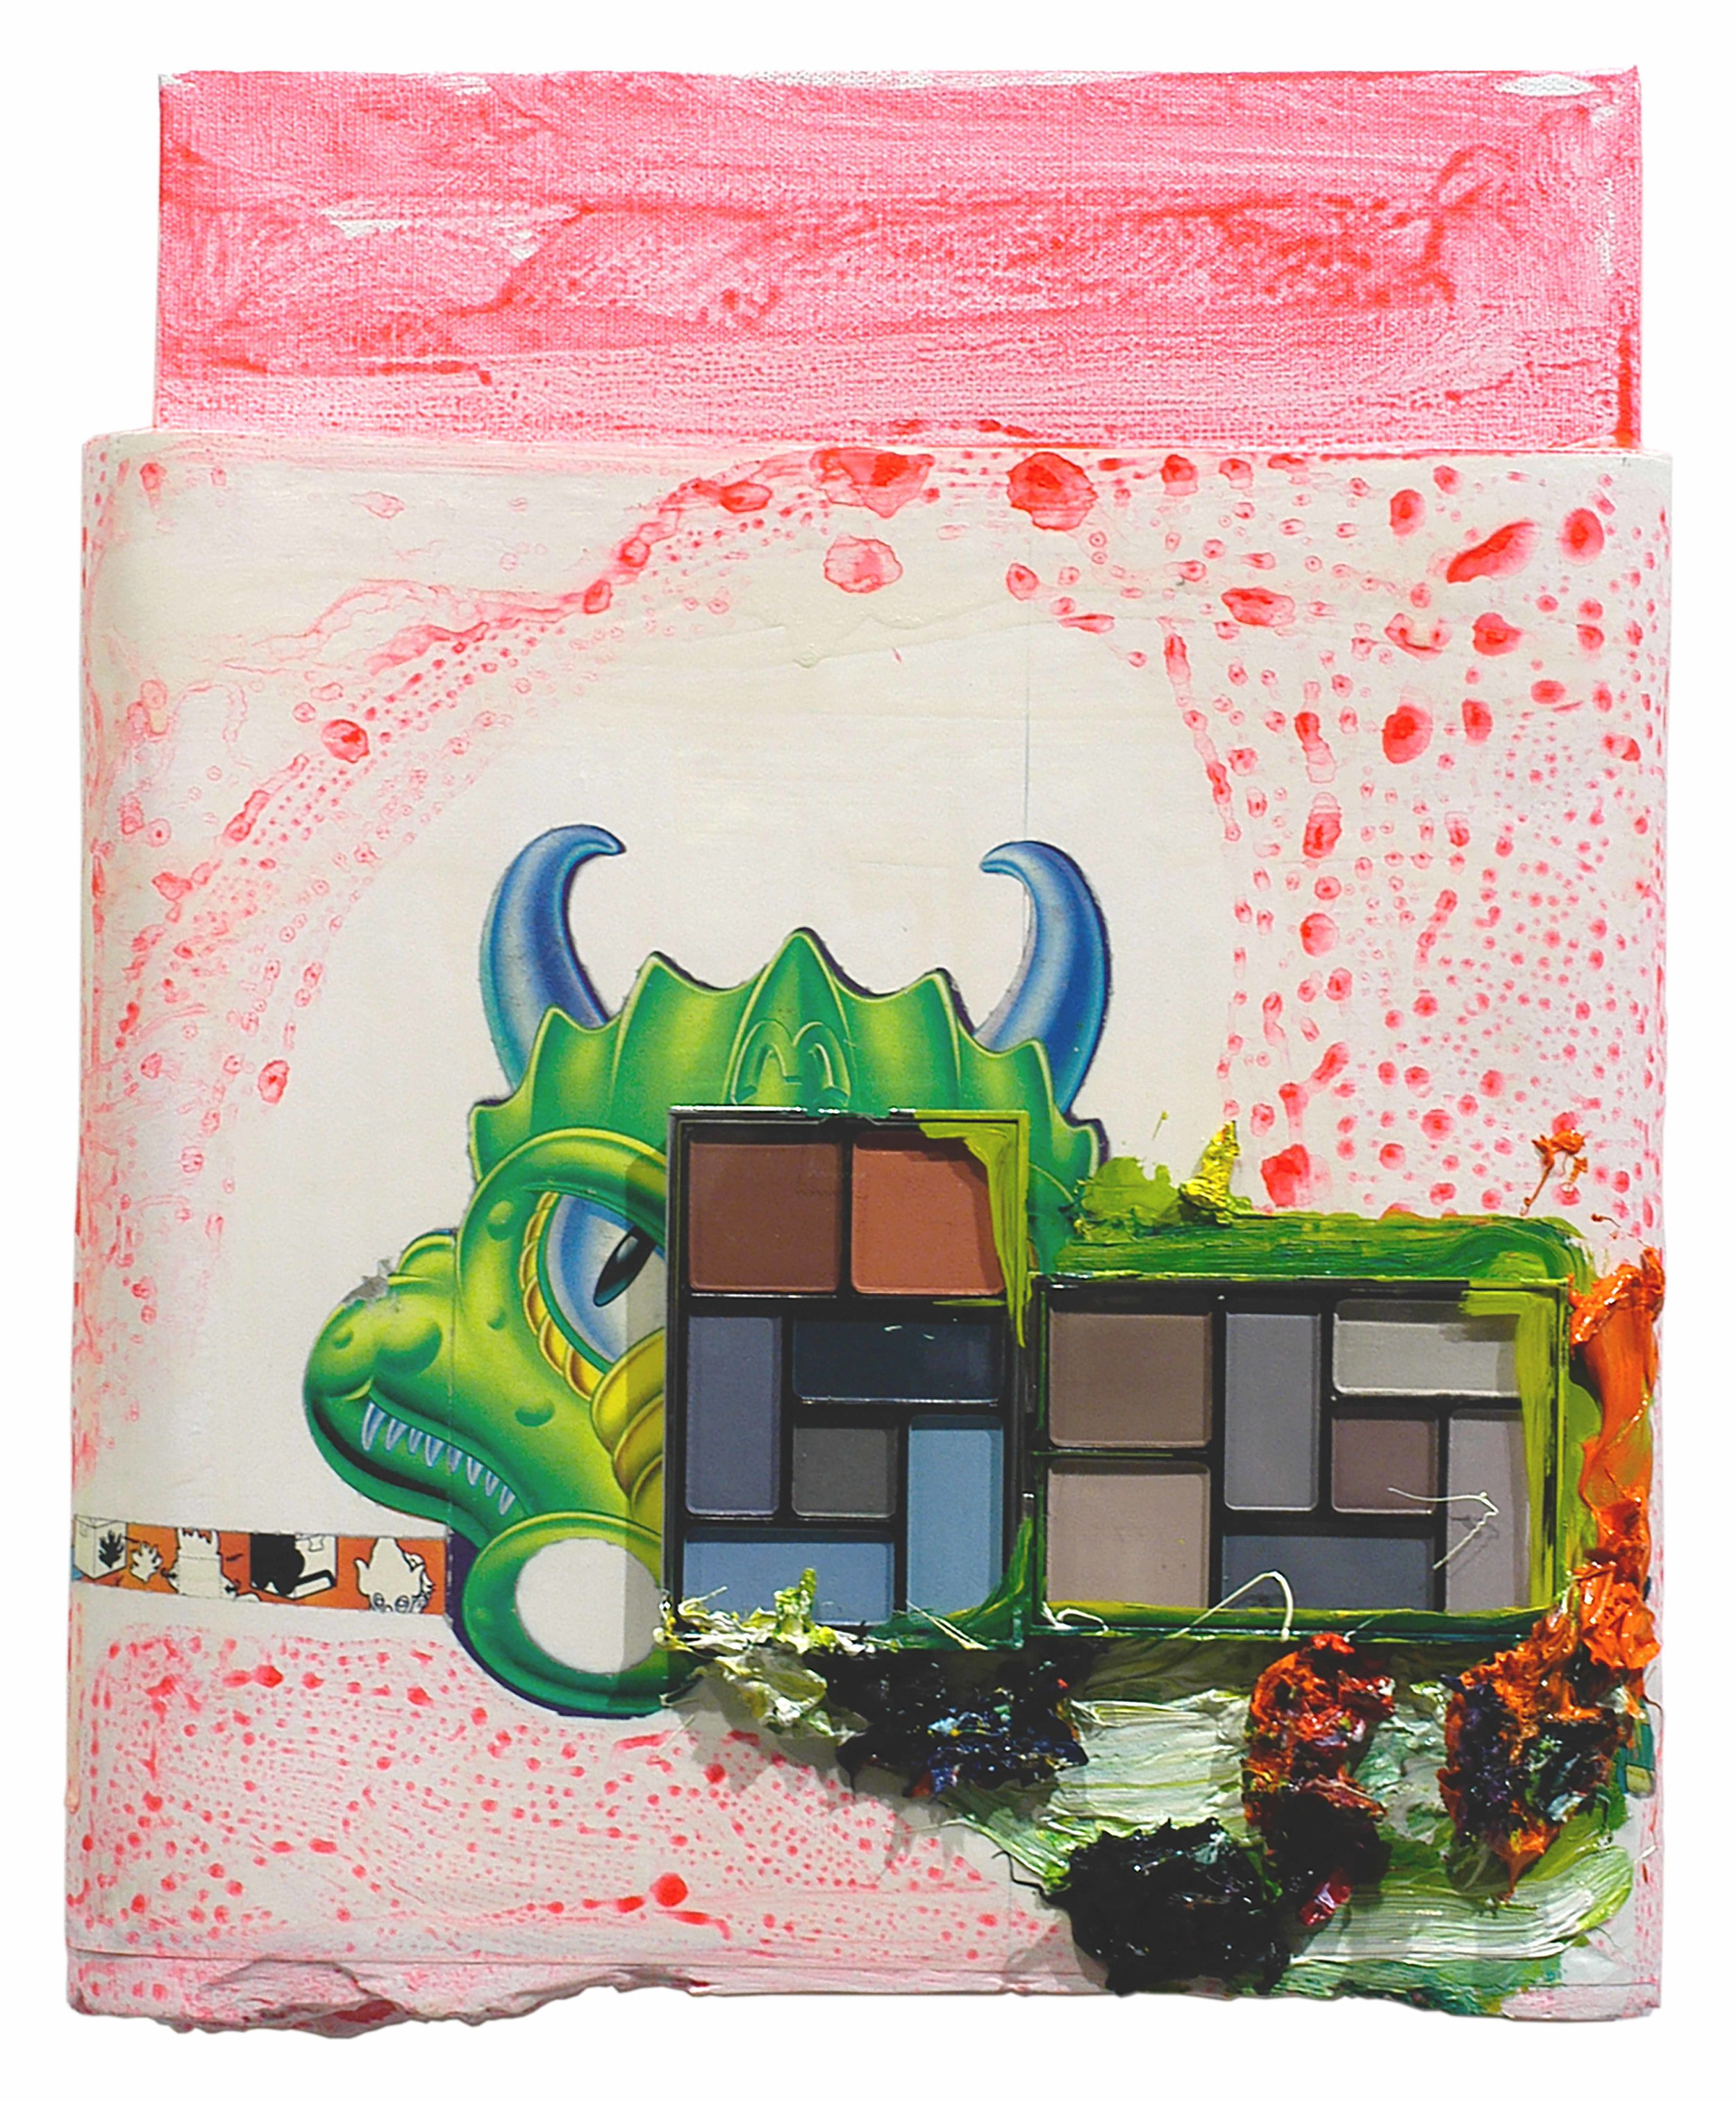 Drew Beattie  Make-up Dragon   2005 oil, acrylic, cosmetic kits, collage and plaster on canvas 14¾ x 11¾ inches